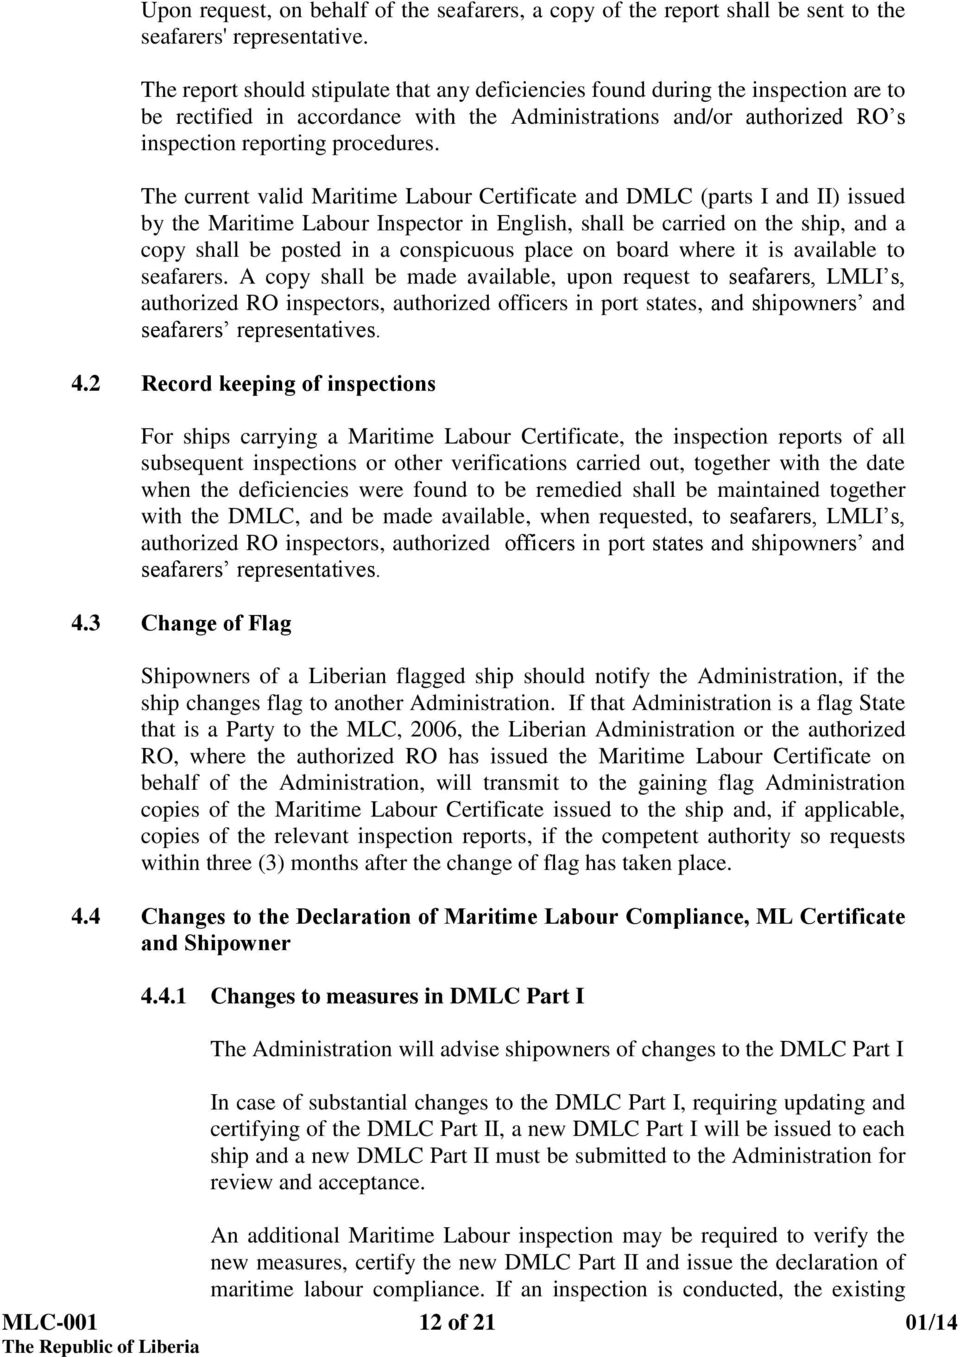 The current valid Maritime Labour Certificate and DMLC (parts I and II) issued by the Maritime Labour Inspector in English, shall be carried on the ship, and a copy shall be posted in a conspicuous